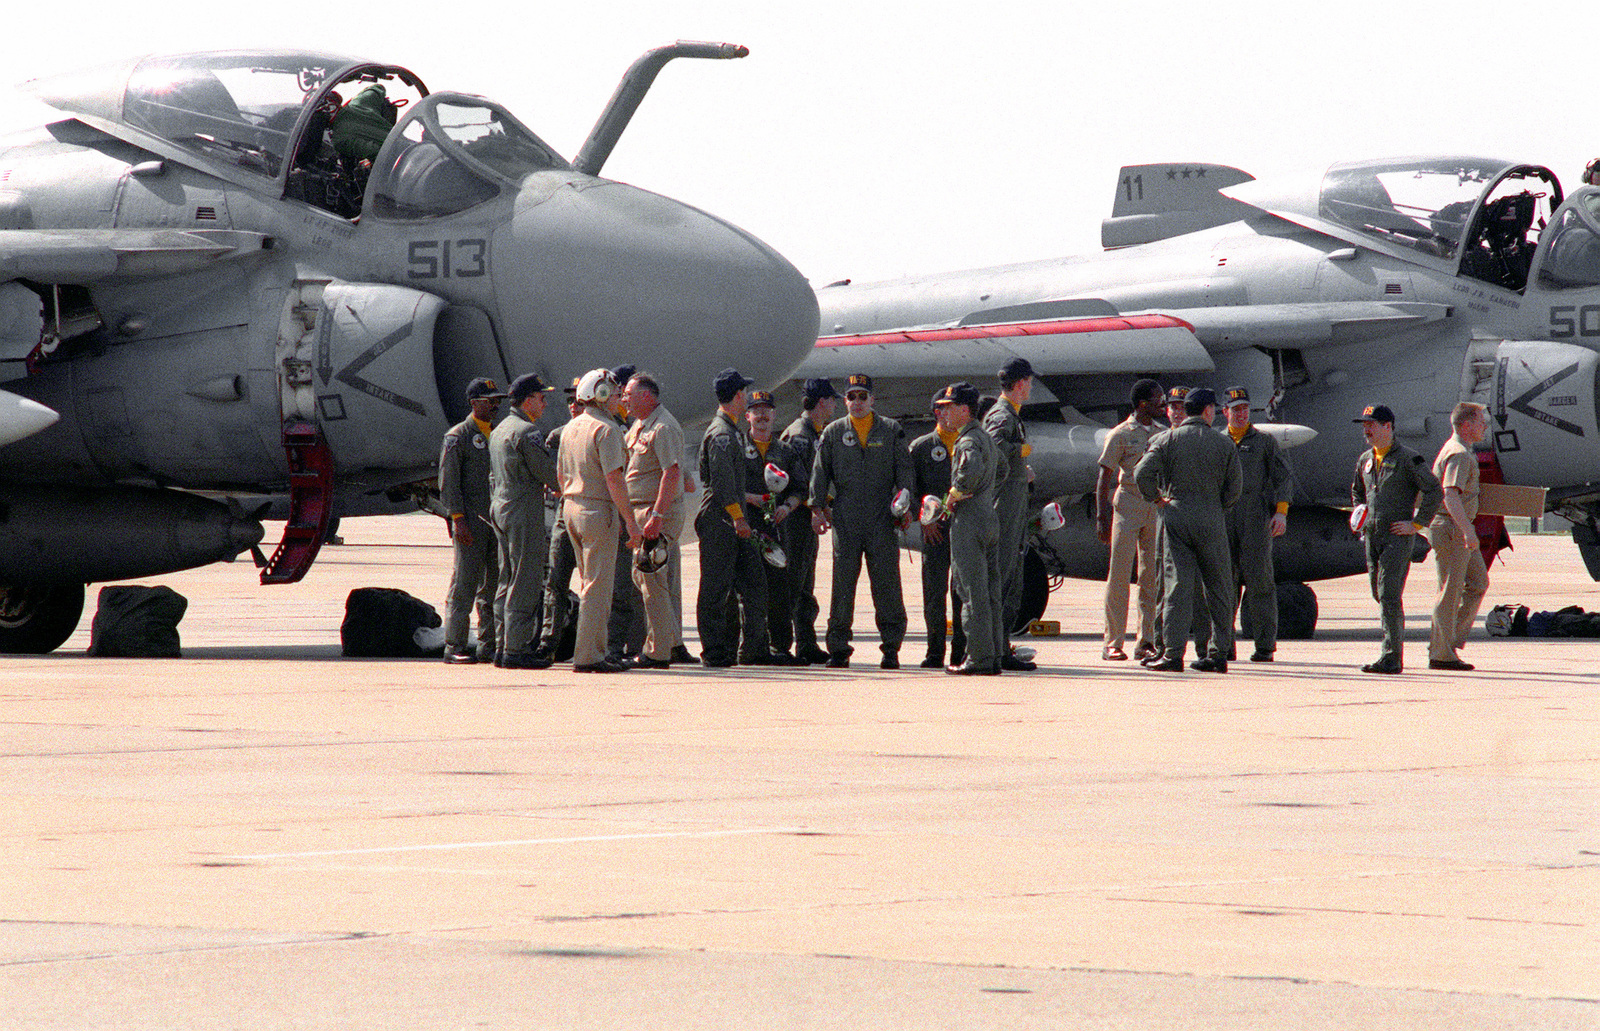 Attack Squadron 75 (VA-75) aviators gather near A-6E Intruder aircraft following their arrival on base. Carrier Air Wing 3 and Carrier Air Wing 17. Wing personnel have returned home after serving in the Persian Gulf during Operation Desert Storm